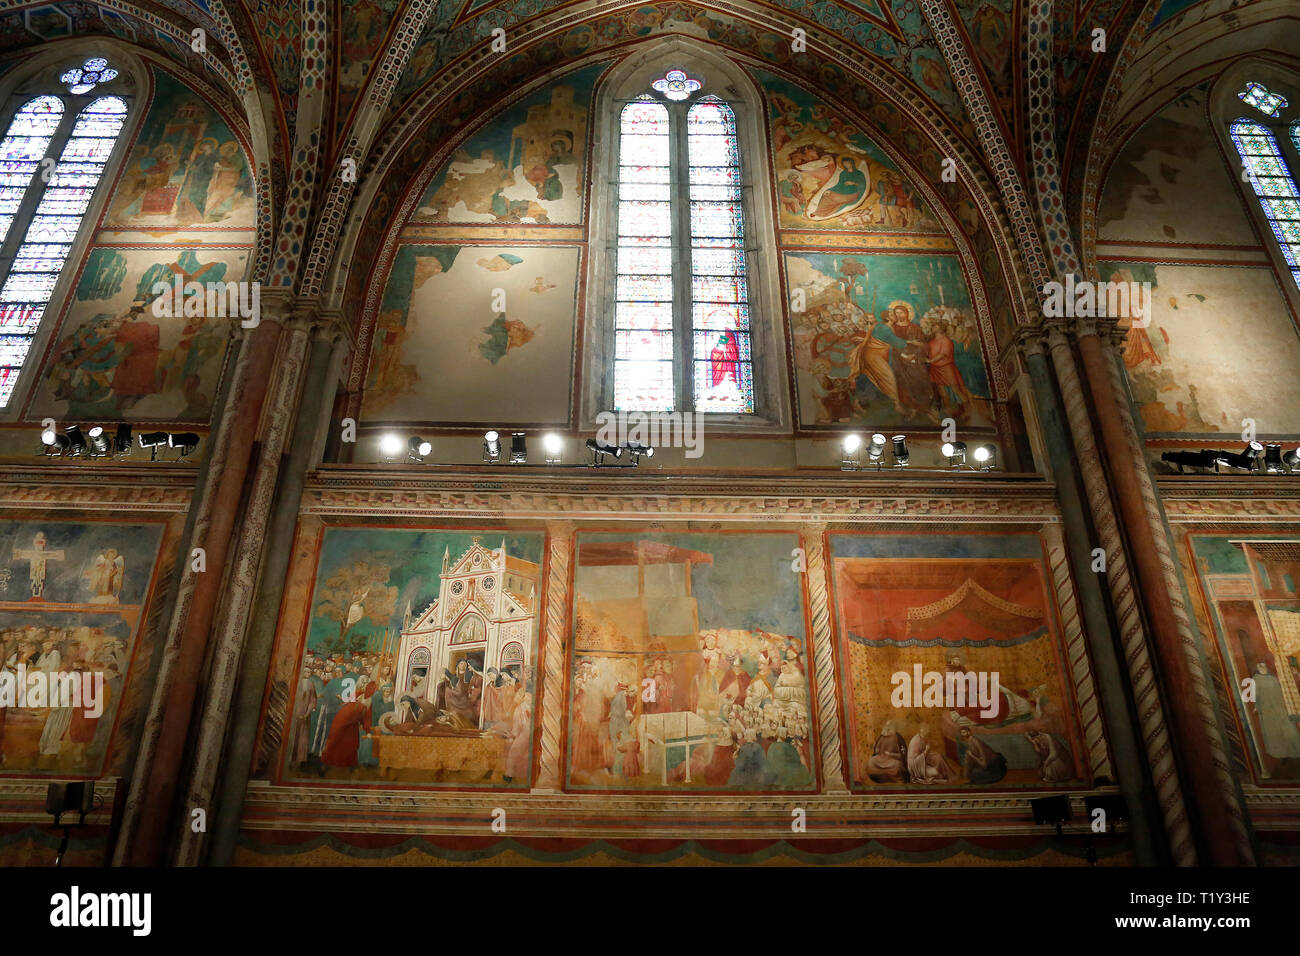 The upper basilica, frescoed by Cimabue Assisi March 29th 2019. The Basilica of Saint Francis of Assisi. On 16 July 1228, st Francis was canonized by  - Stock Image